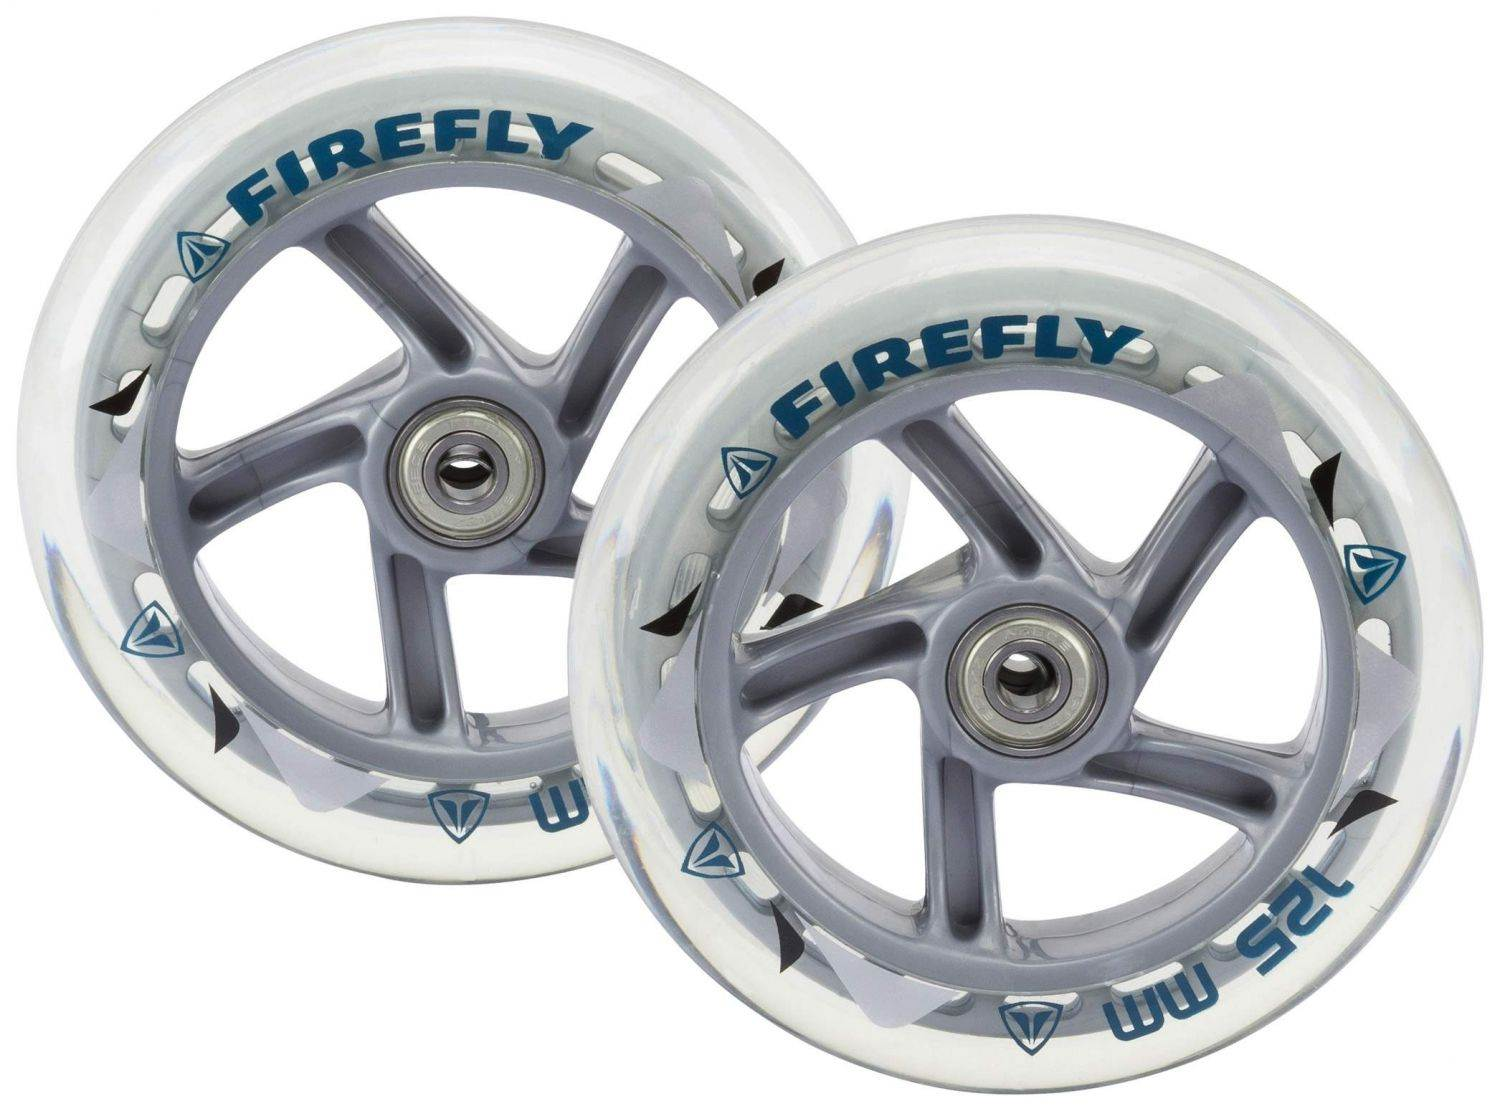 Lindenau Angebote Firefly Scooterrolle 125 mm inklusive Kugellager (Farbe: 893 transparent)